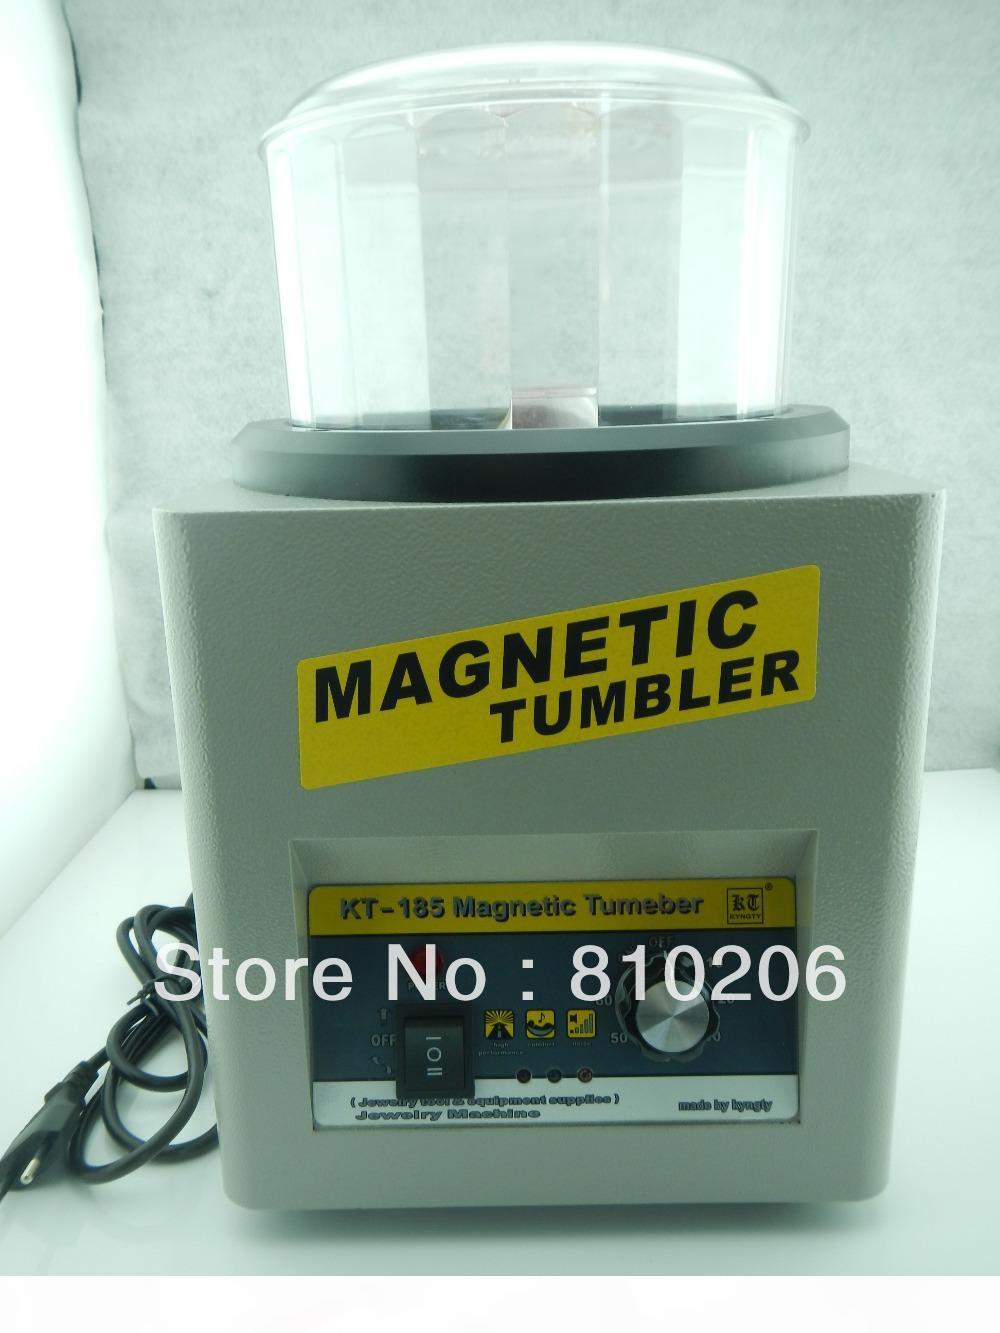 Wholesale-Free Shipping! KT-185 Magnetic Tumbler. Mini Magnetic Tumbler, Polishing Machine with 100g magnetic pins for free